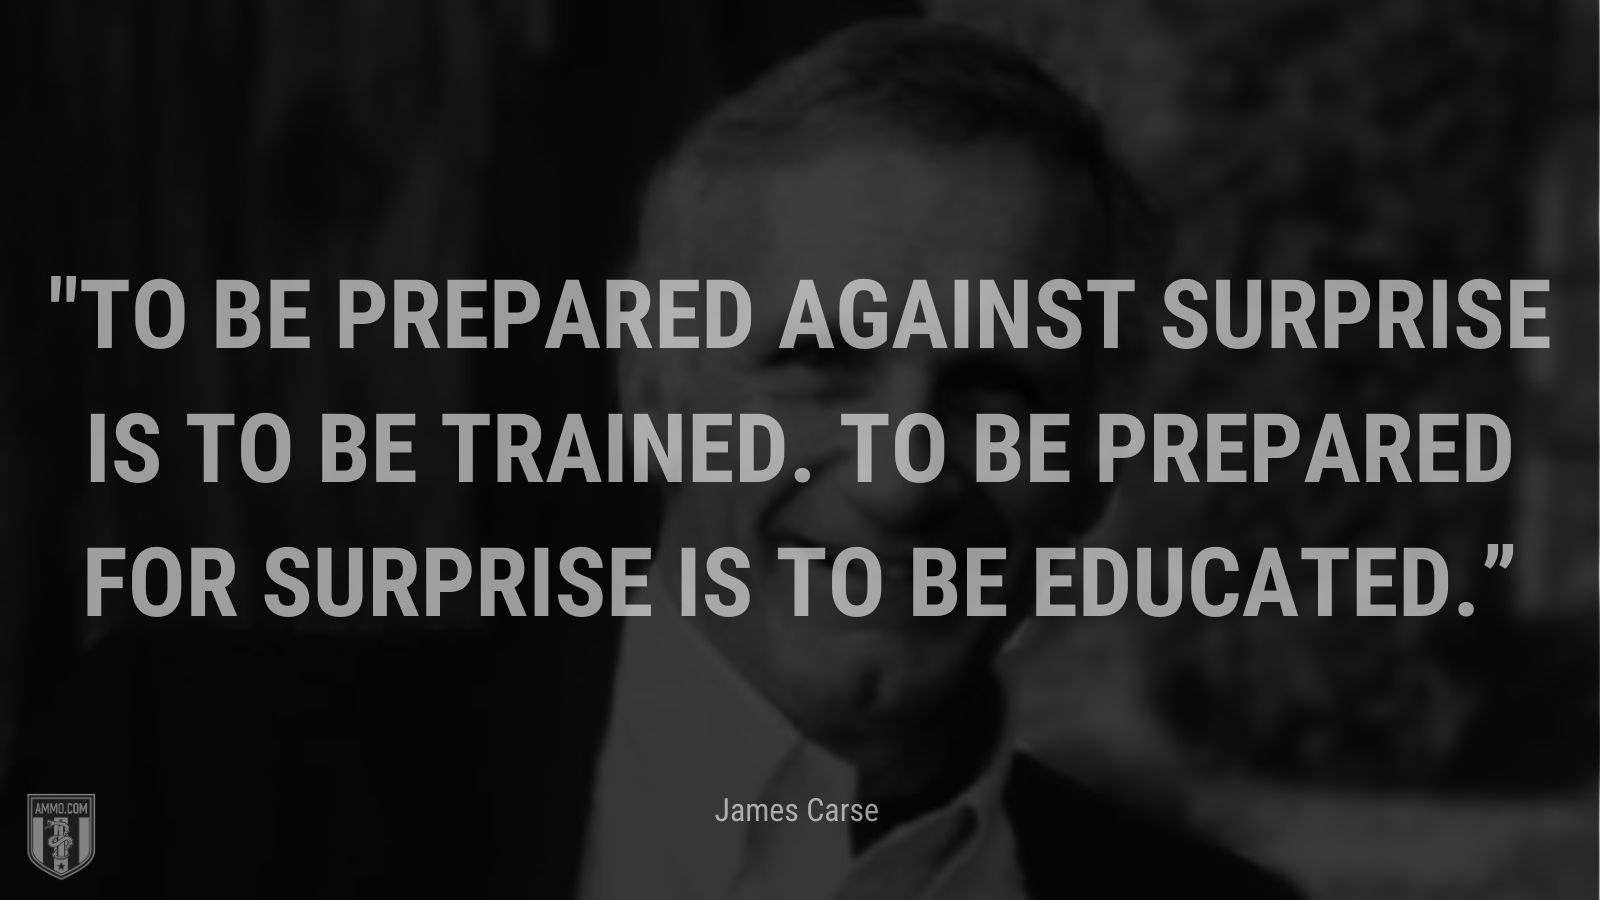 """""""To be prepared against surprise is to be trained. To be prepared for surprise is to be educated."""" - James Carse"""